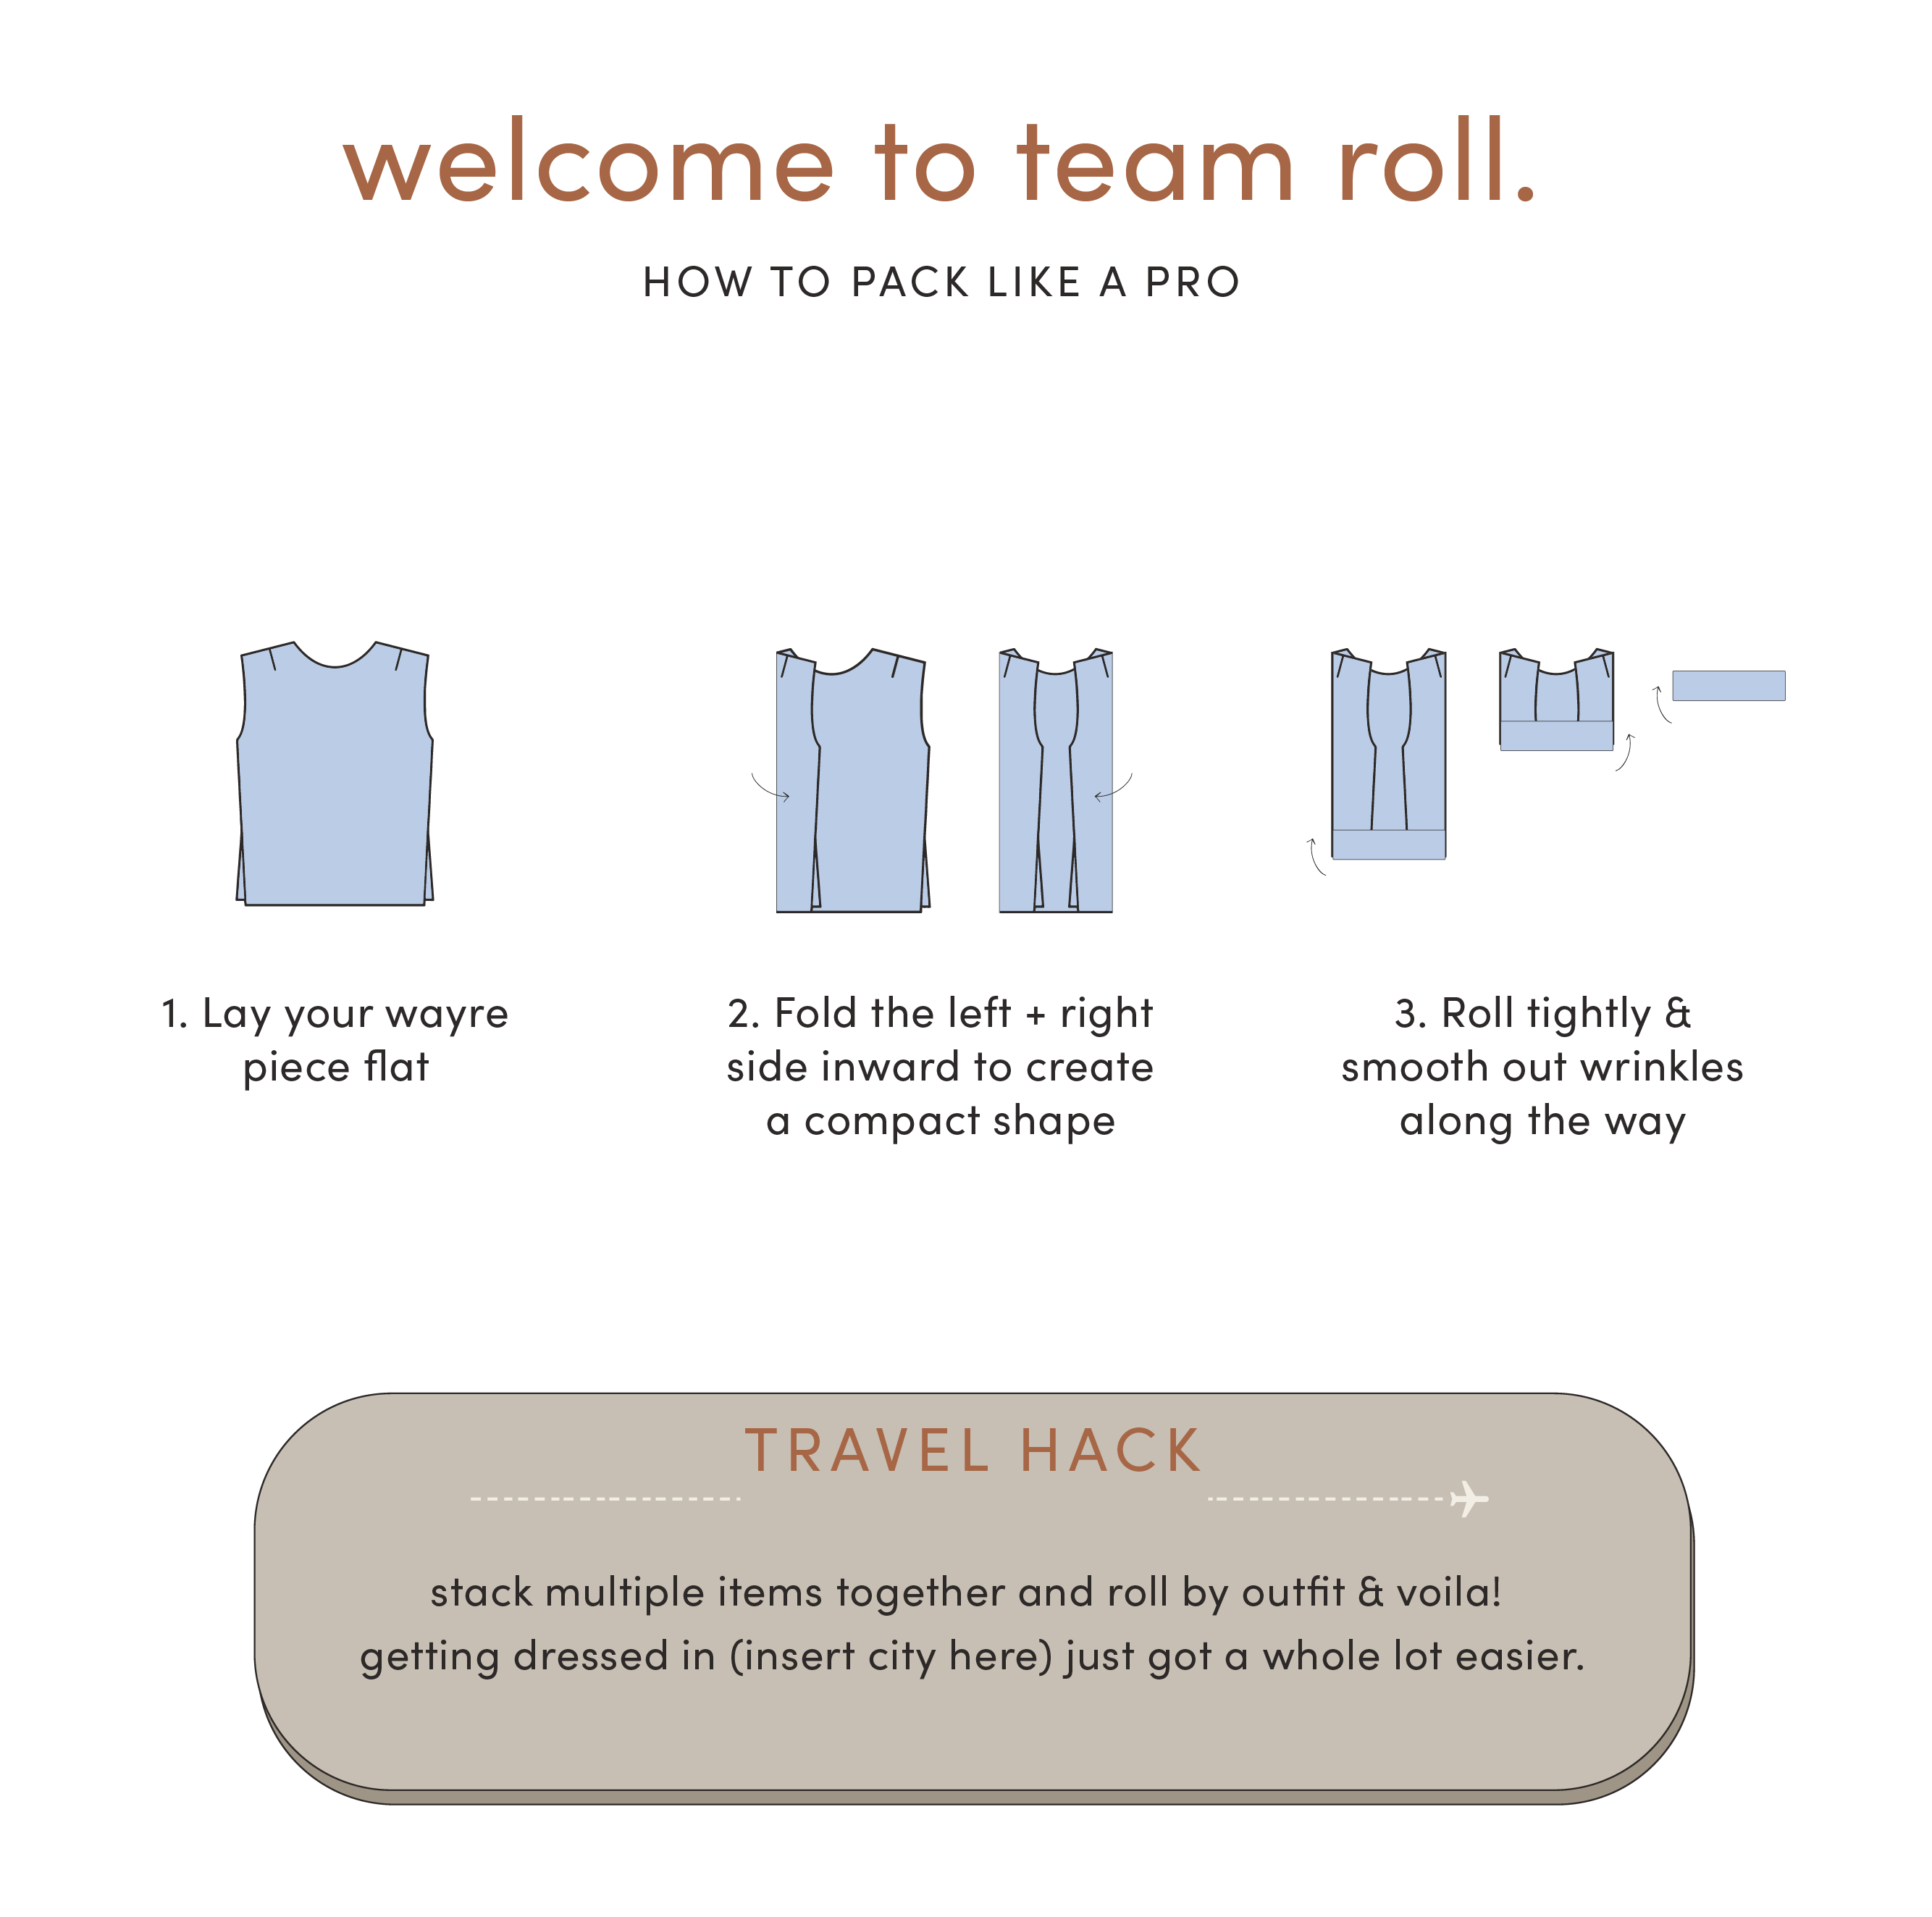 welcome to team roll.